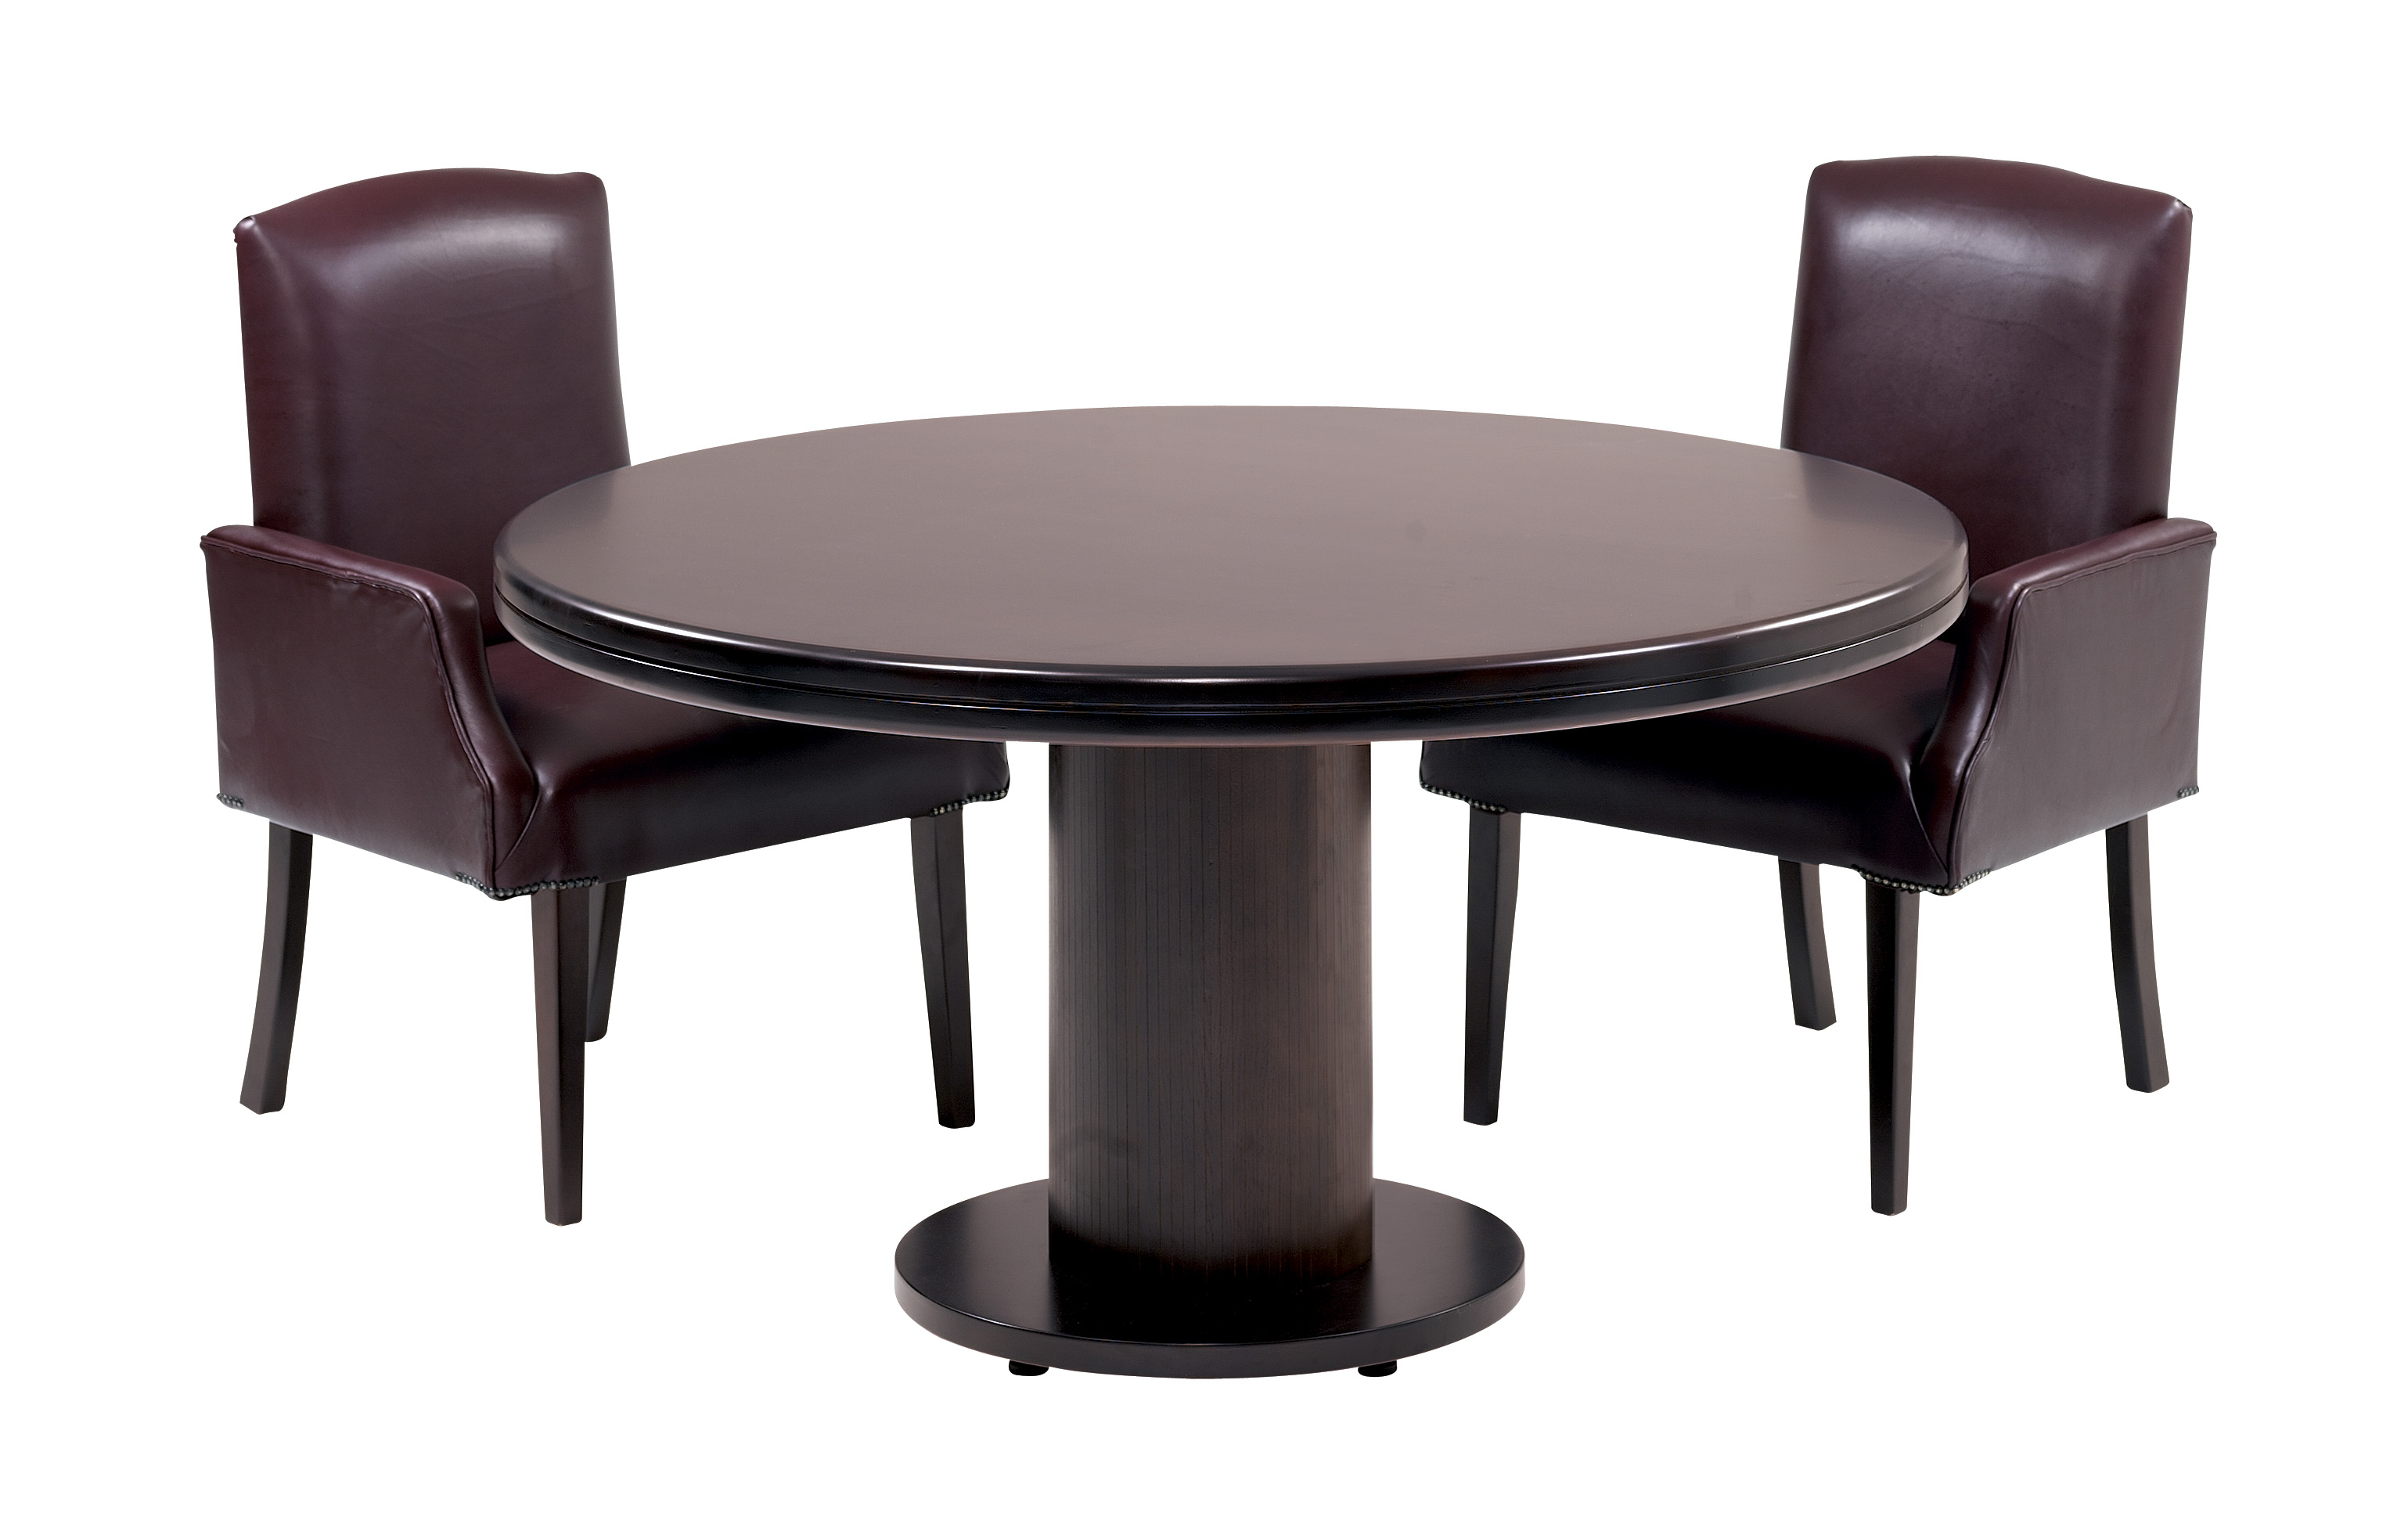 Boston Conference table 36 SEATER - Amahle office Furniture